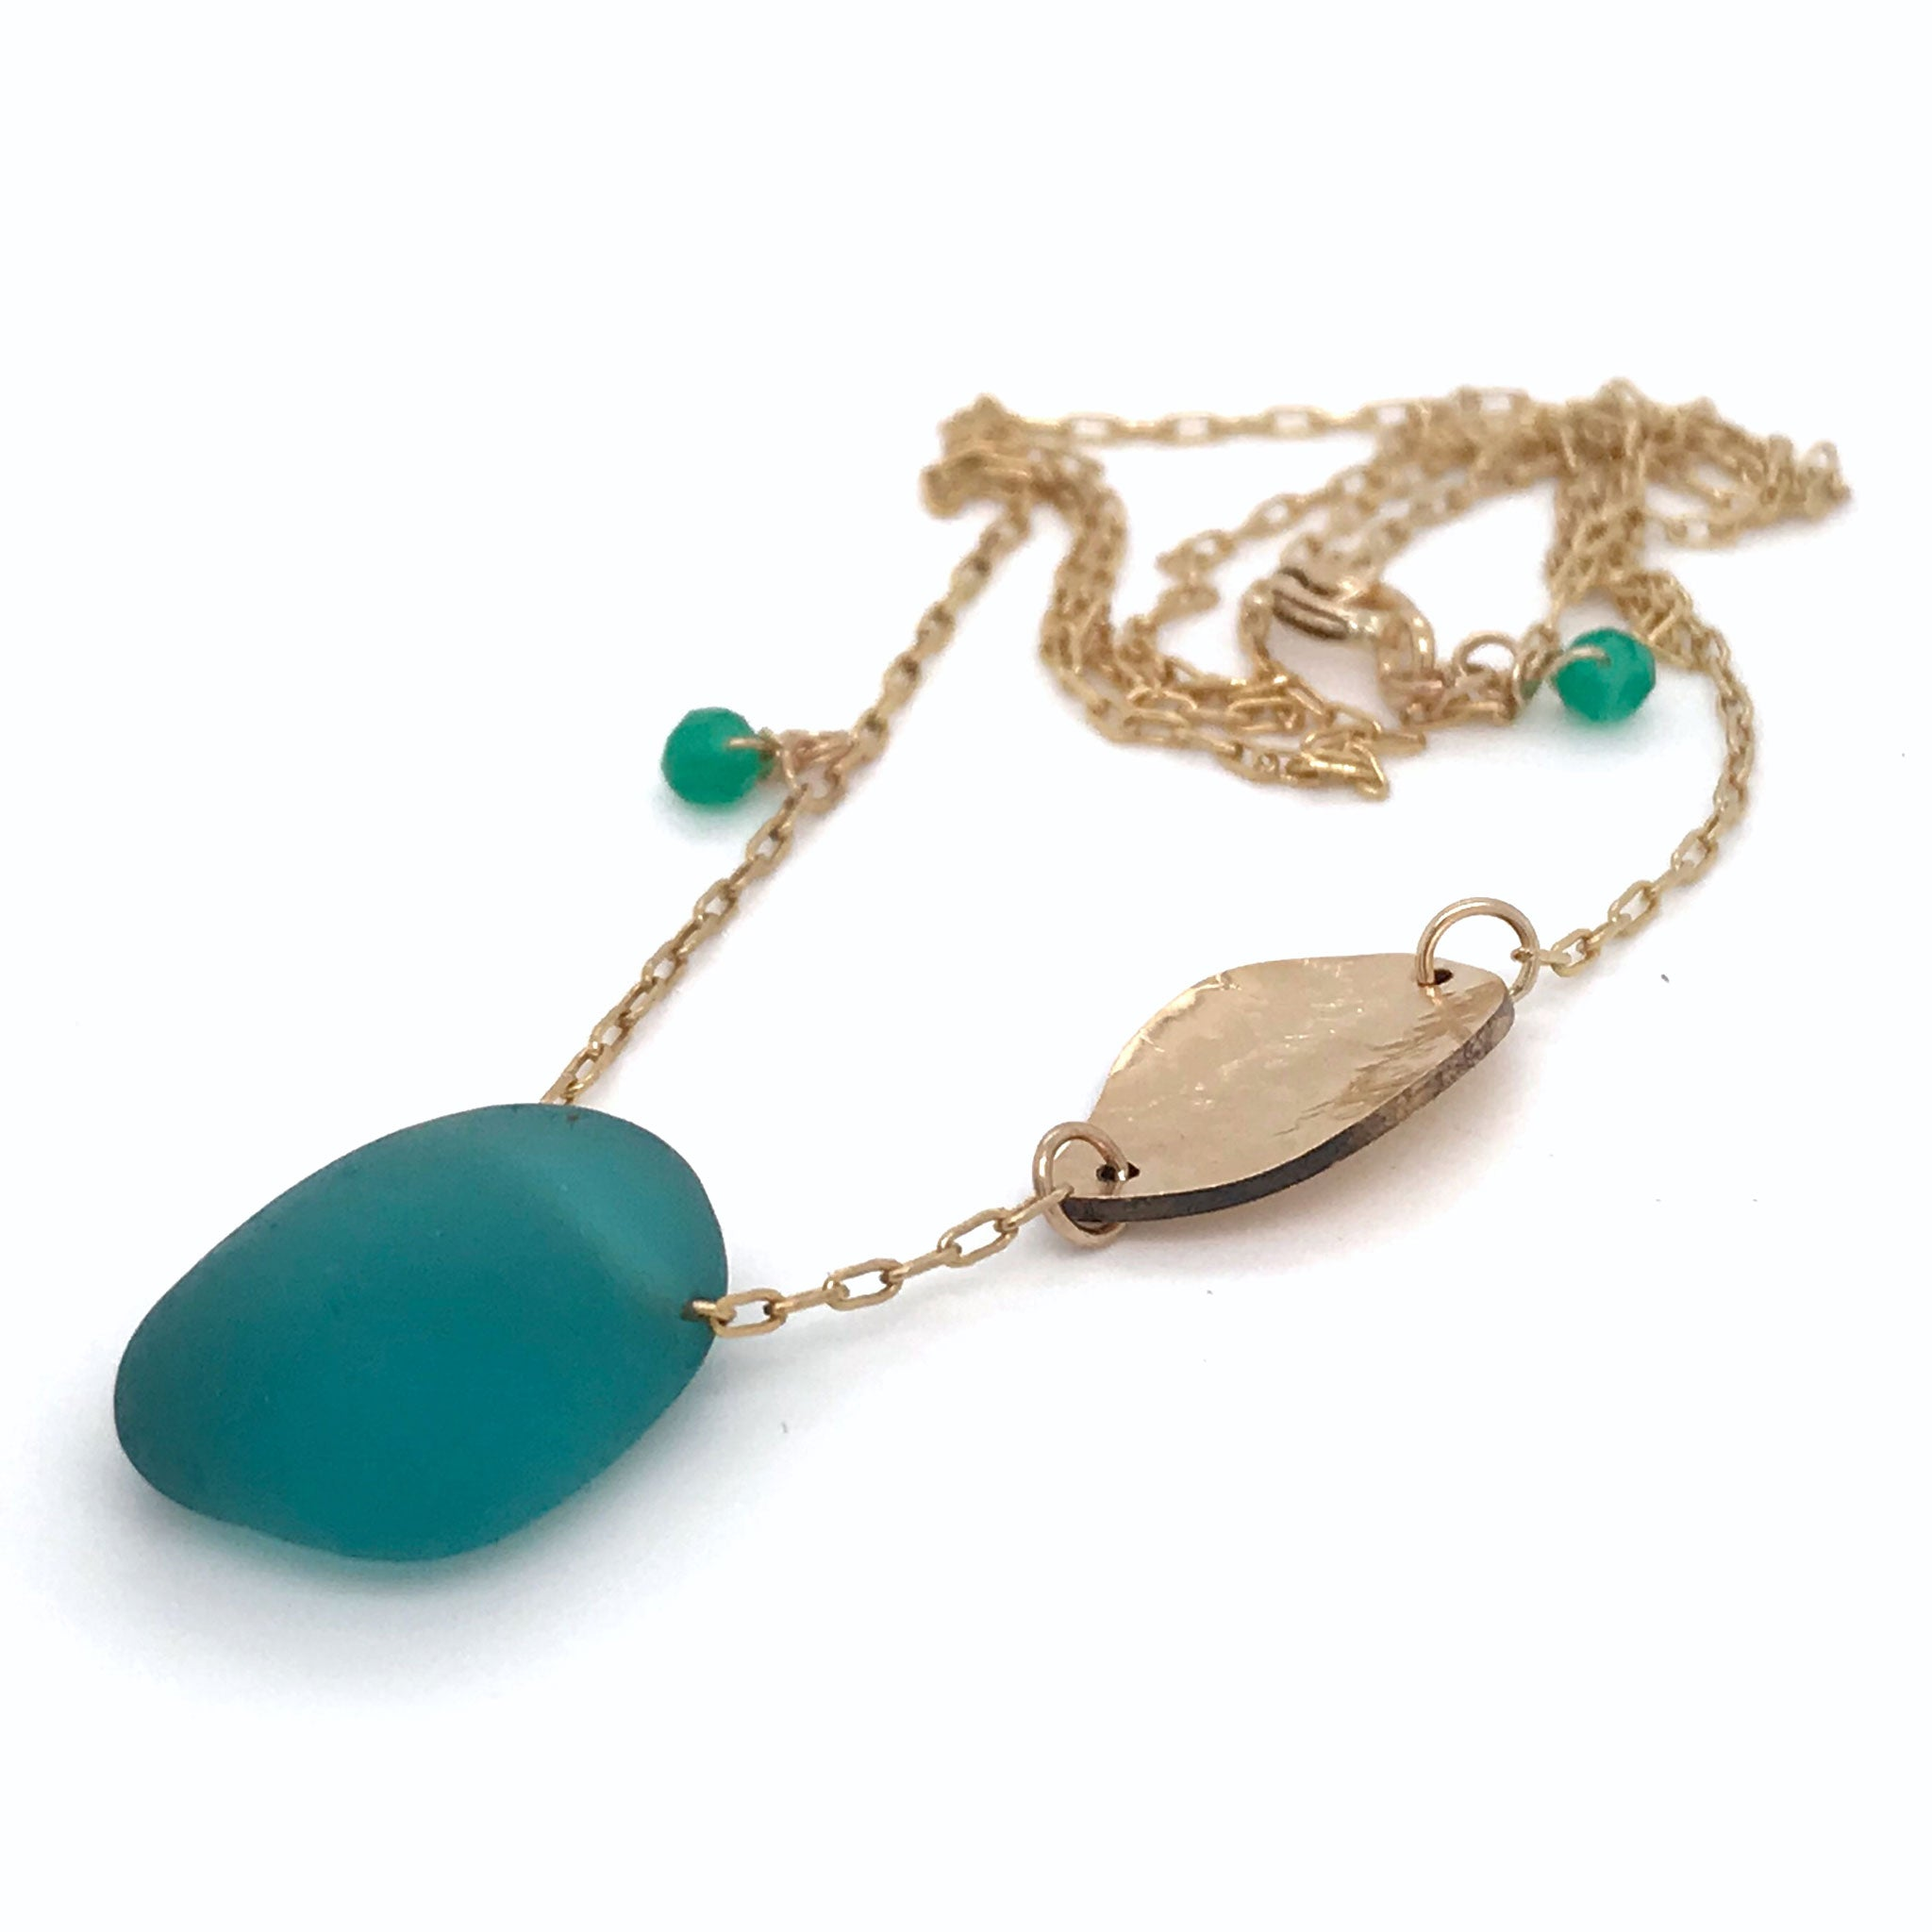 teal seaglass necklace with gold leaf charm Kriket Broadhurst jewellery